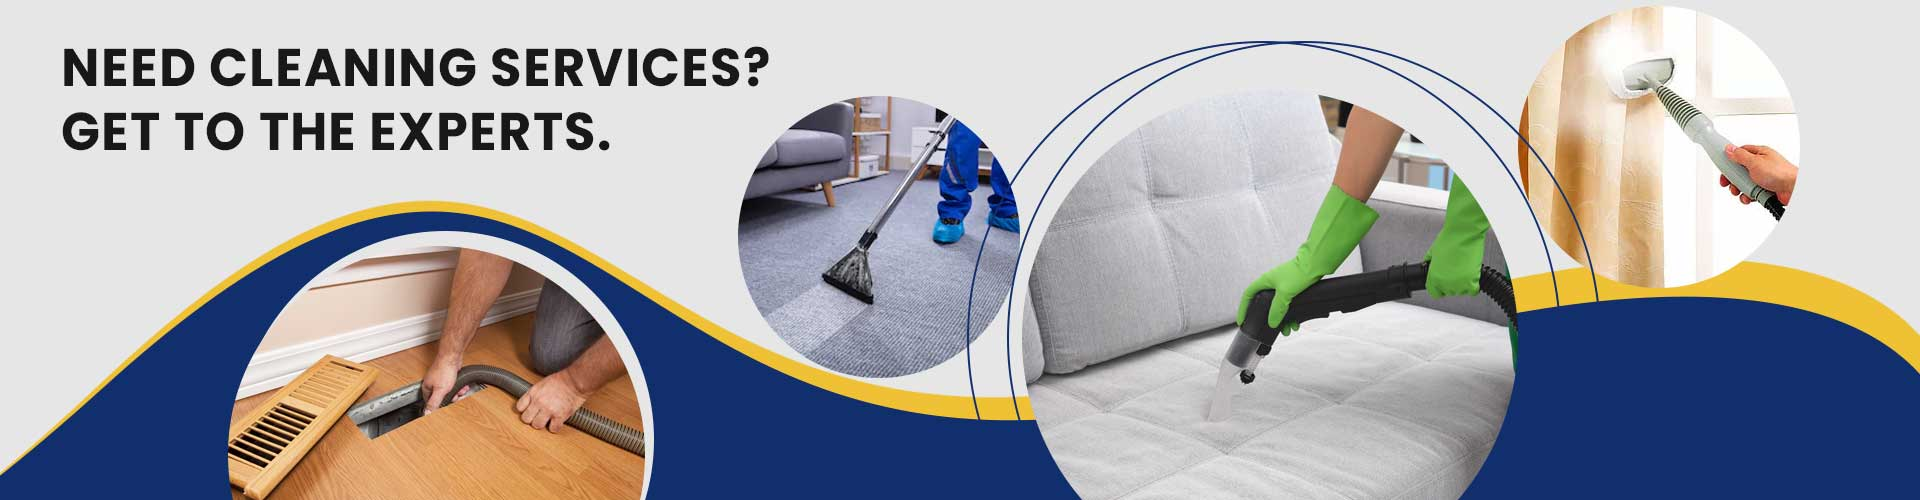 Upholstery Stains Worrying You? Go For Scotchgard Protection